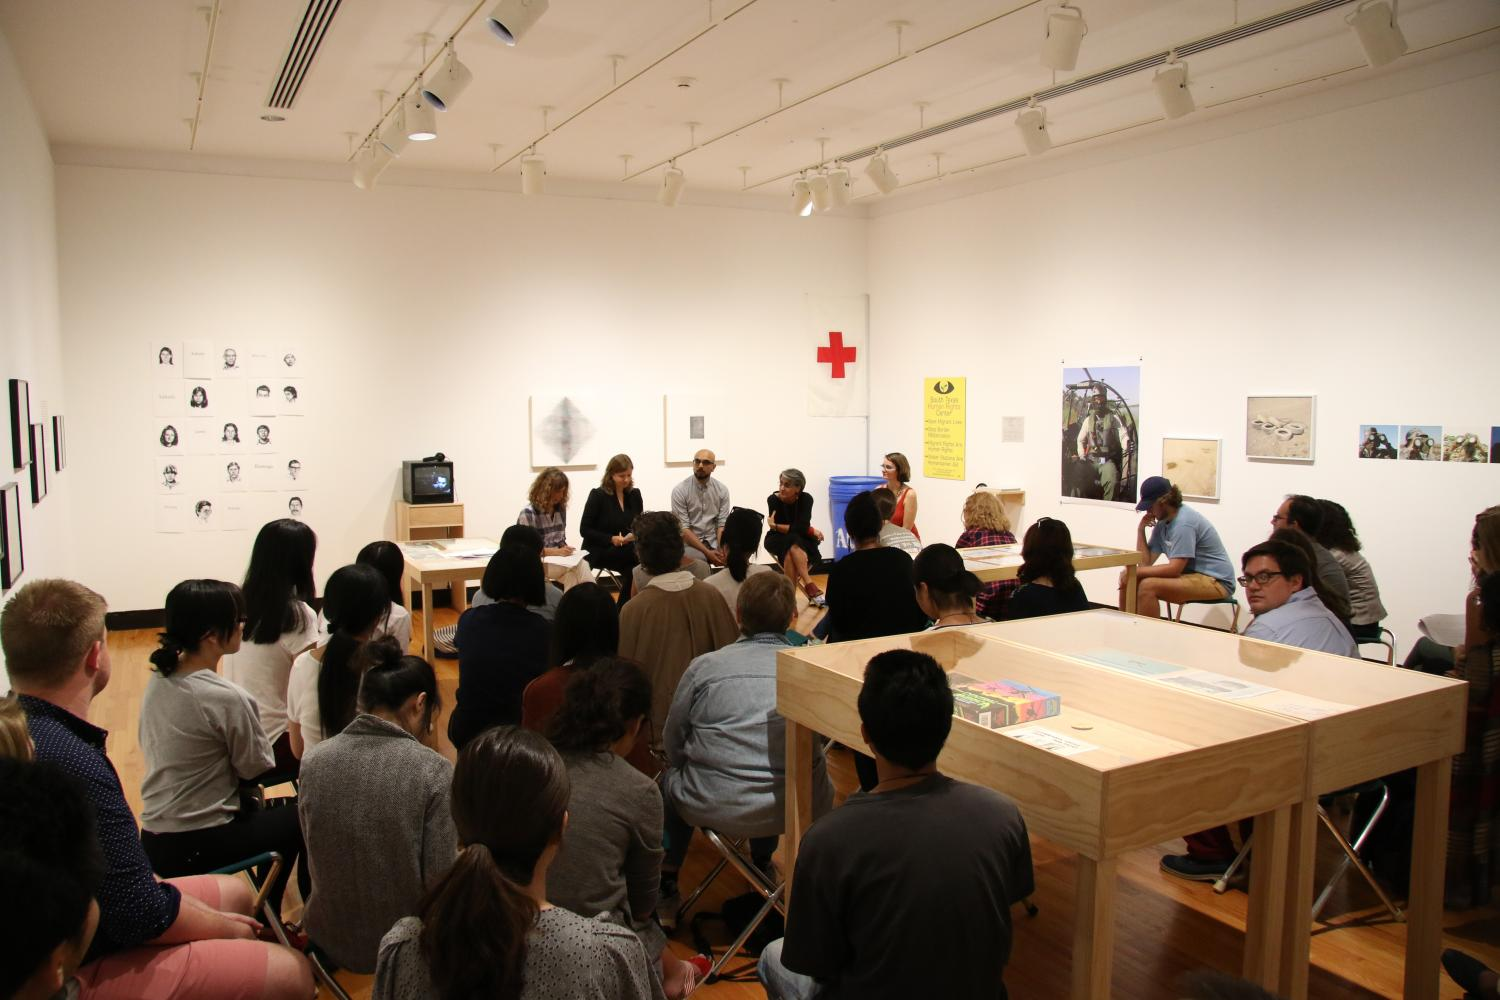 Crossings and Borderlands Gallery Conversation included Faranak Miraftab, Ellen Moodie, and Junaid Rana. It was moderated by Amy L. Powell and Terri Weissman.